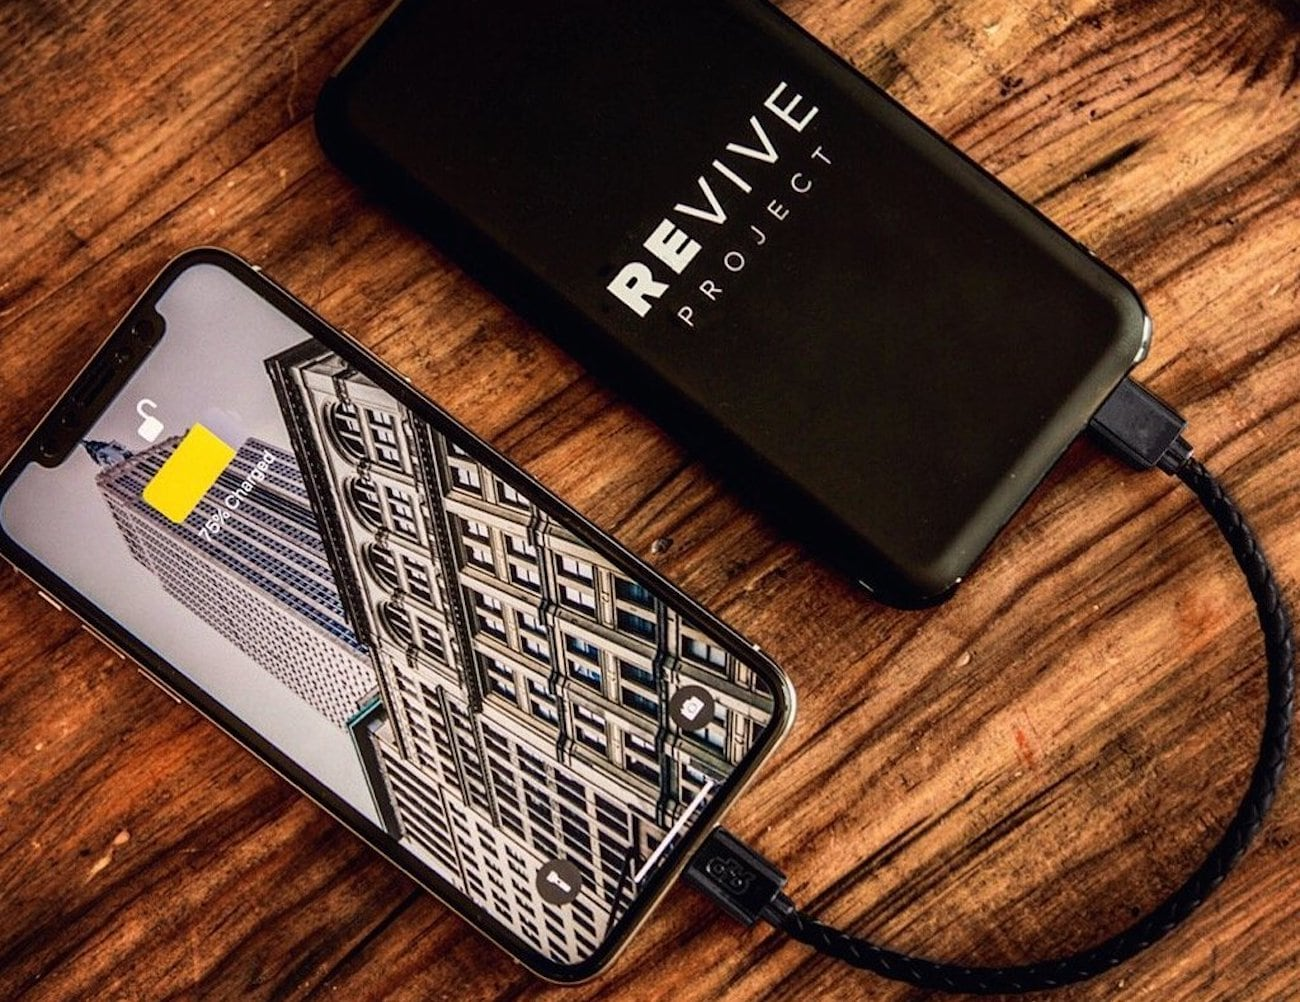 REVIVE 10,000 mAh High-Speed Power Bank charges with style